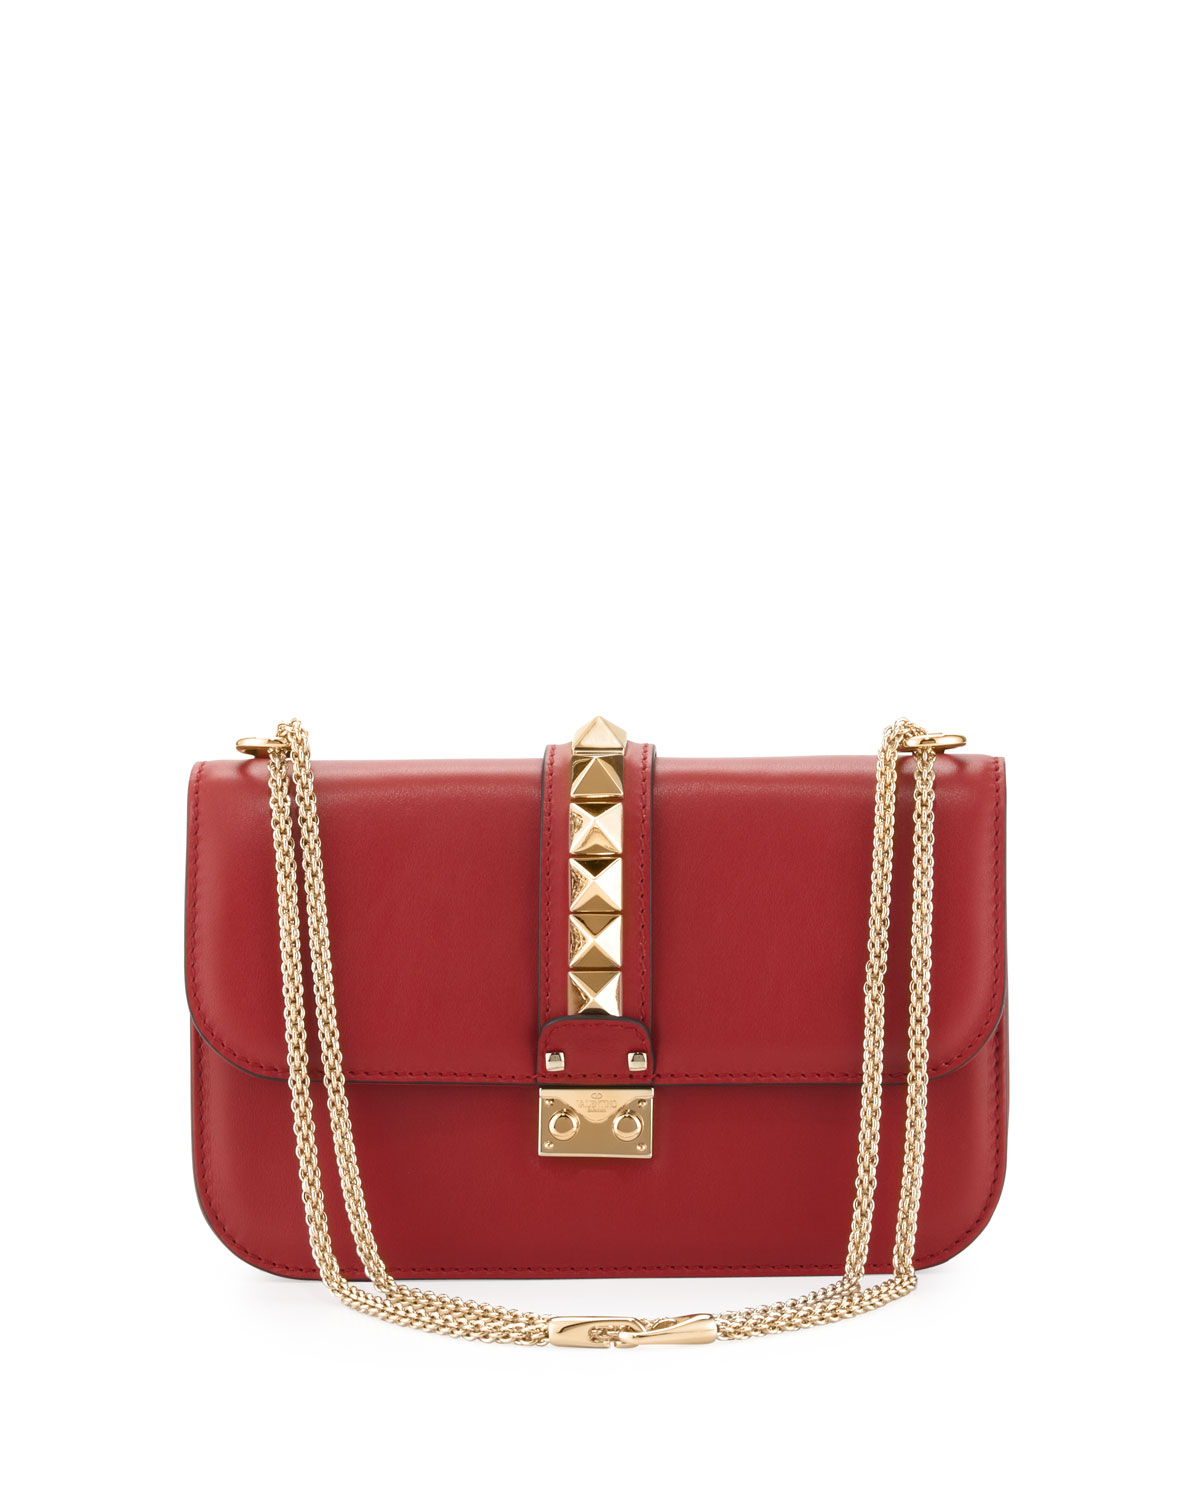 Lock Rockstud-Trim Flap Bag, Red